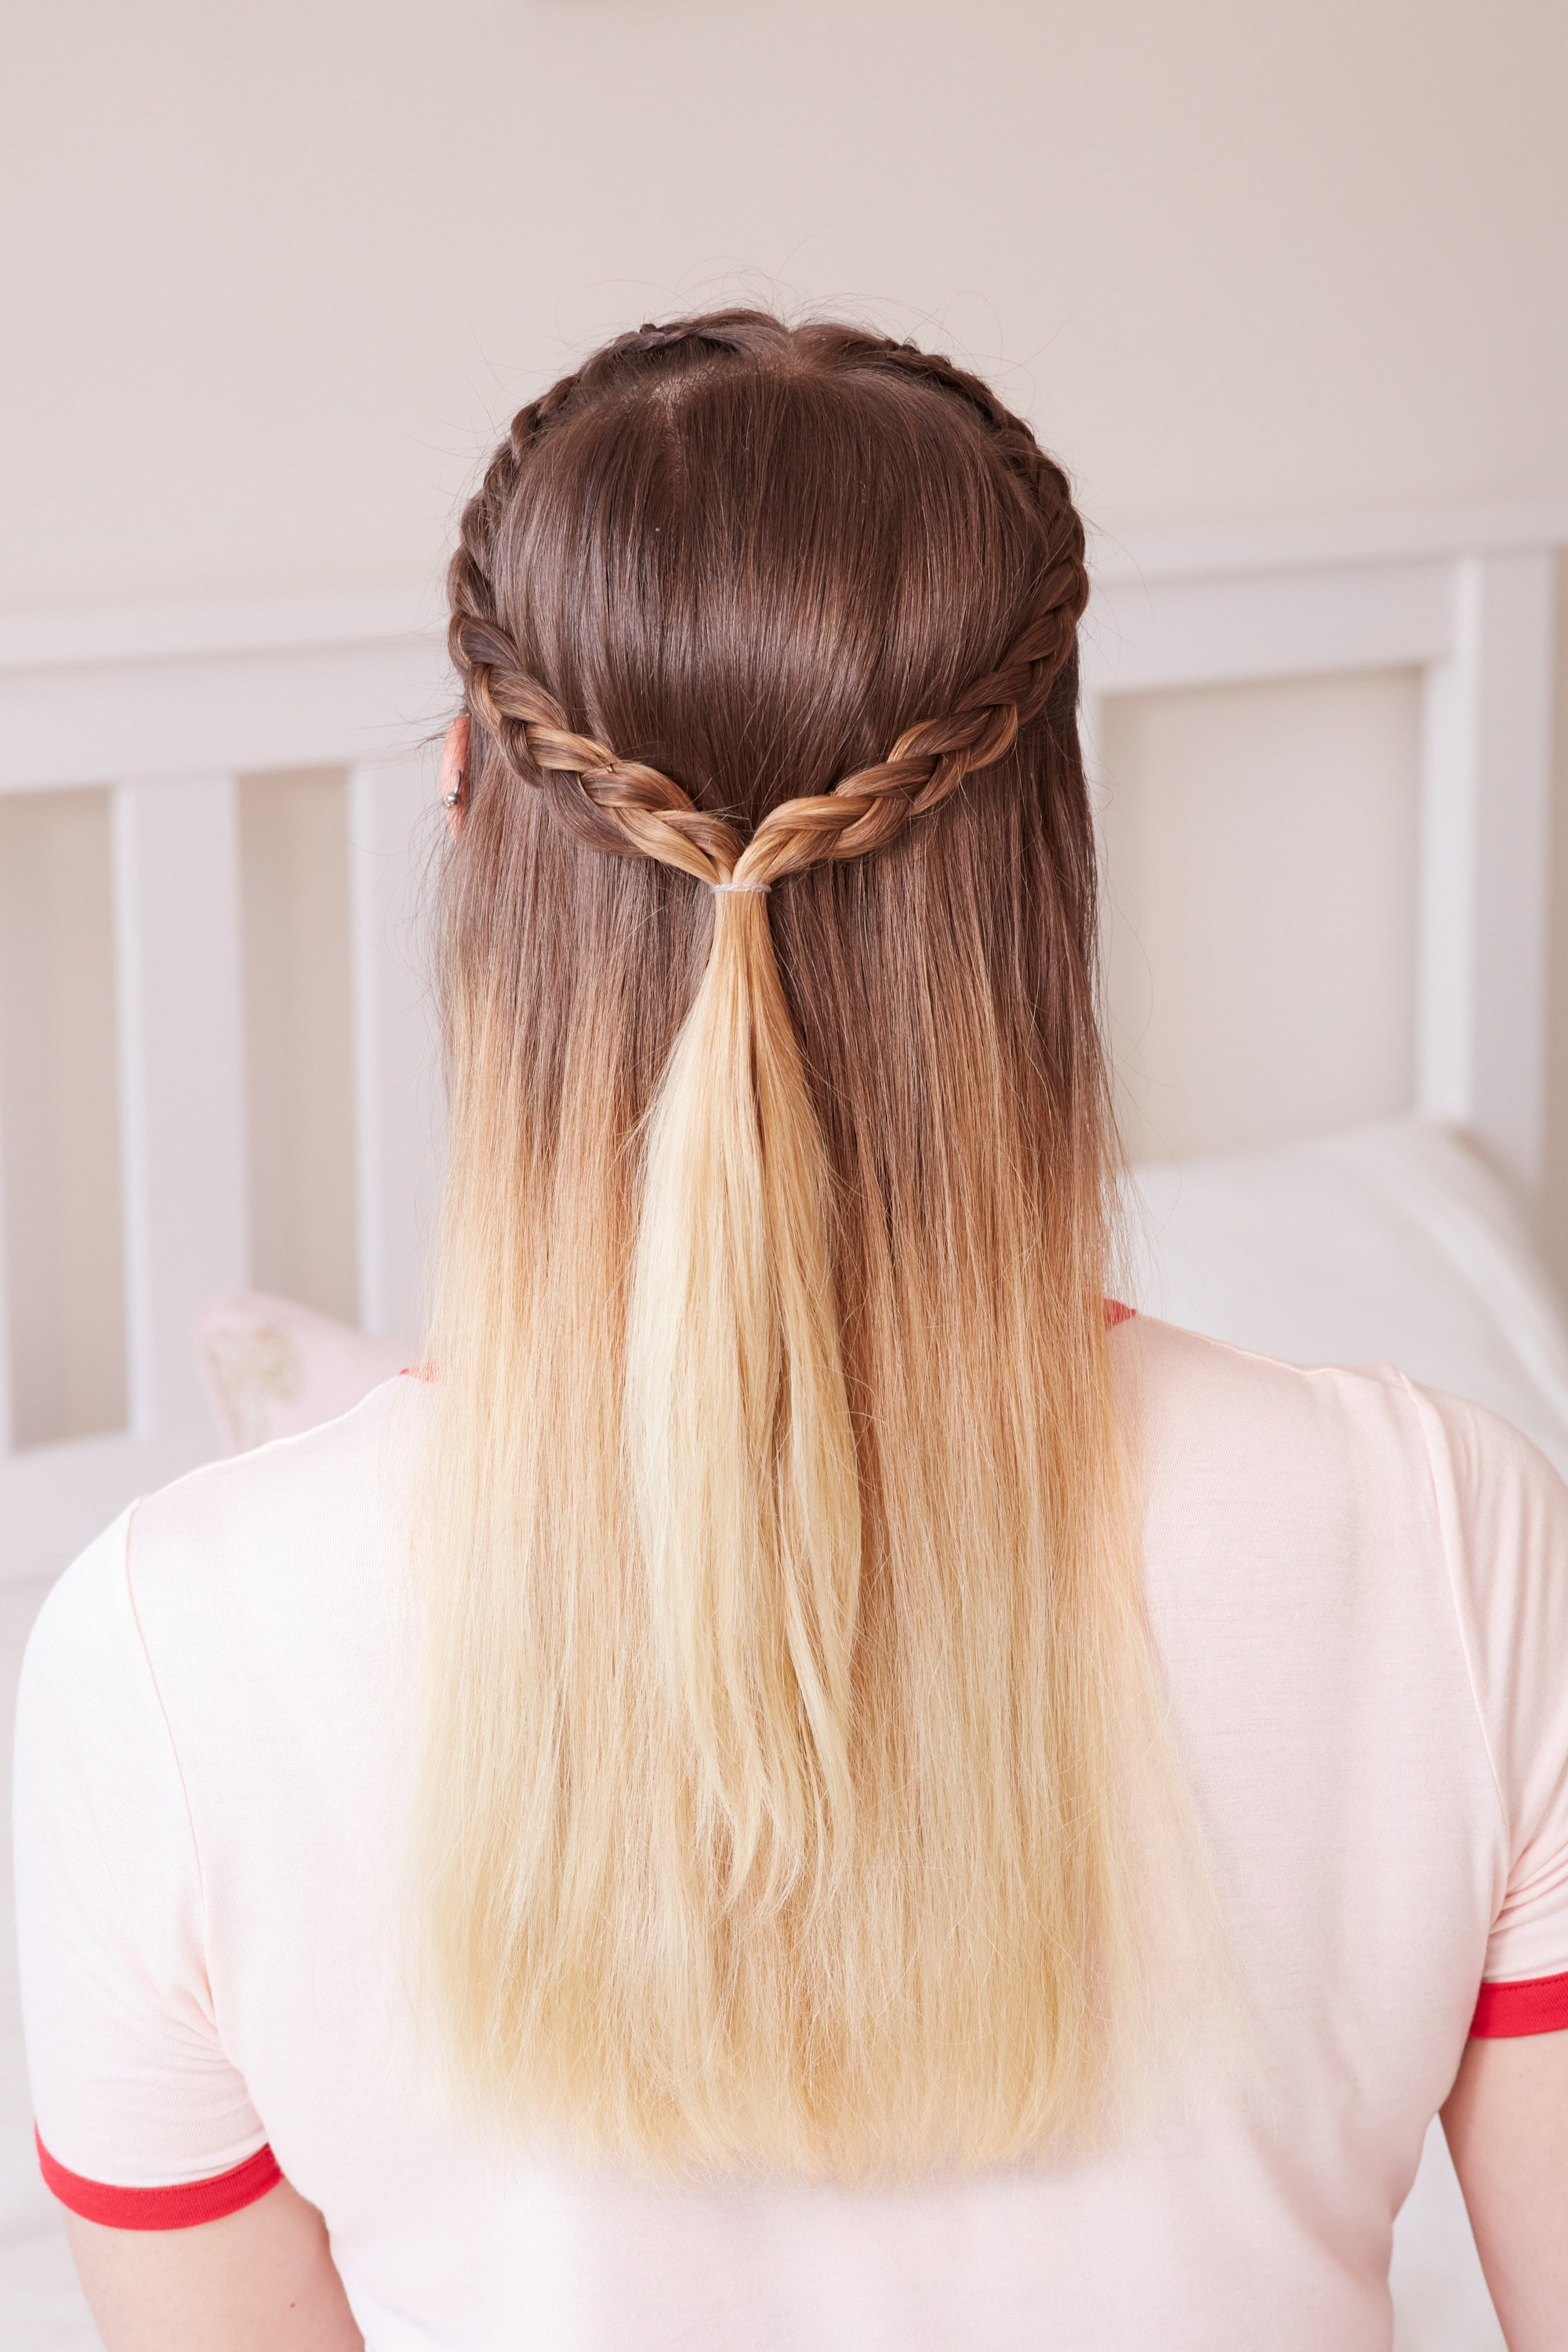 Woman with brunette and blonde ombre hair in a half-up half-down braid